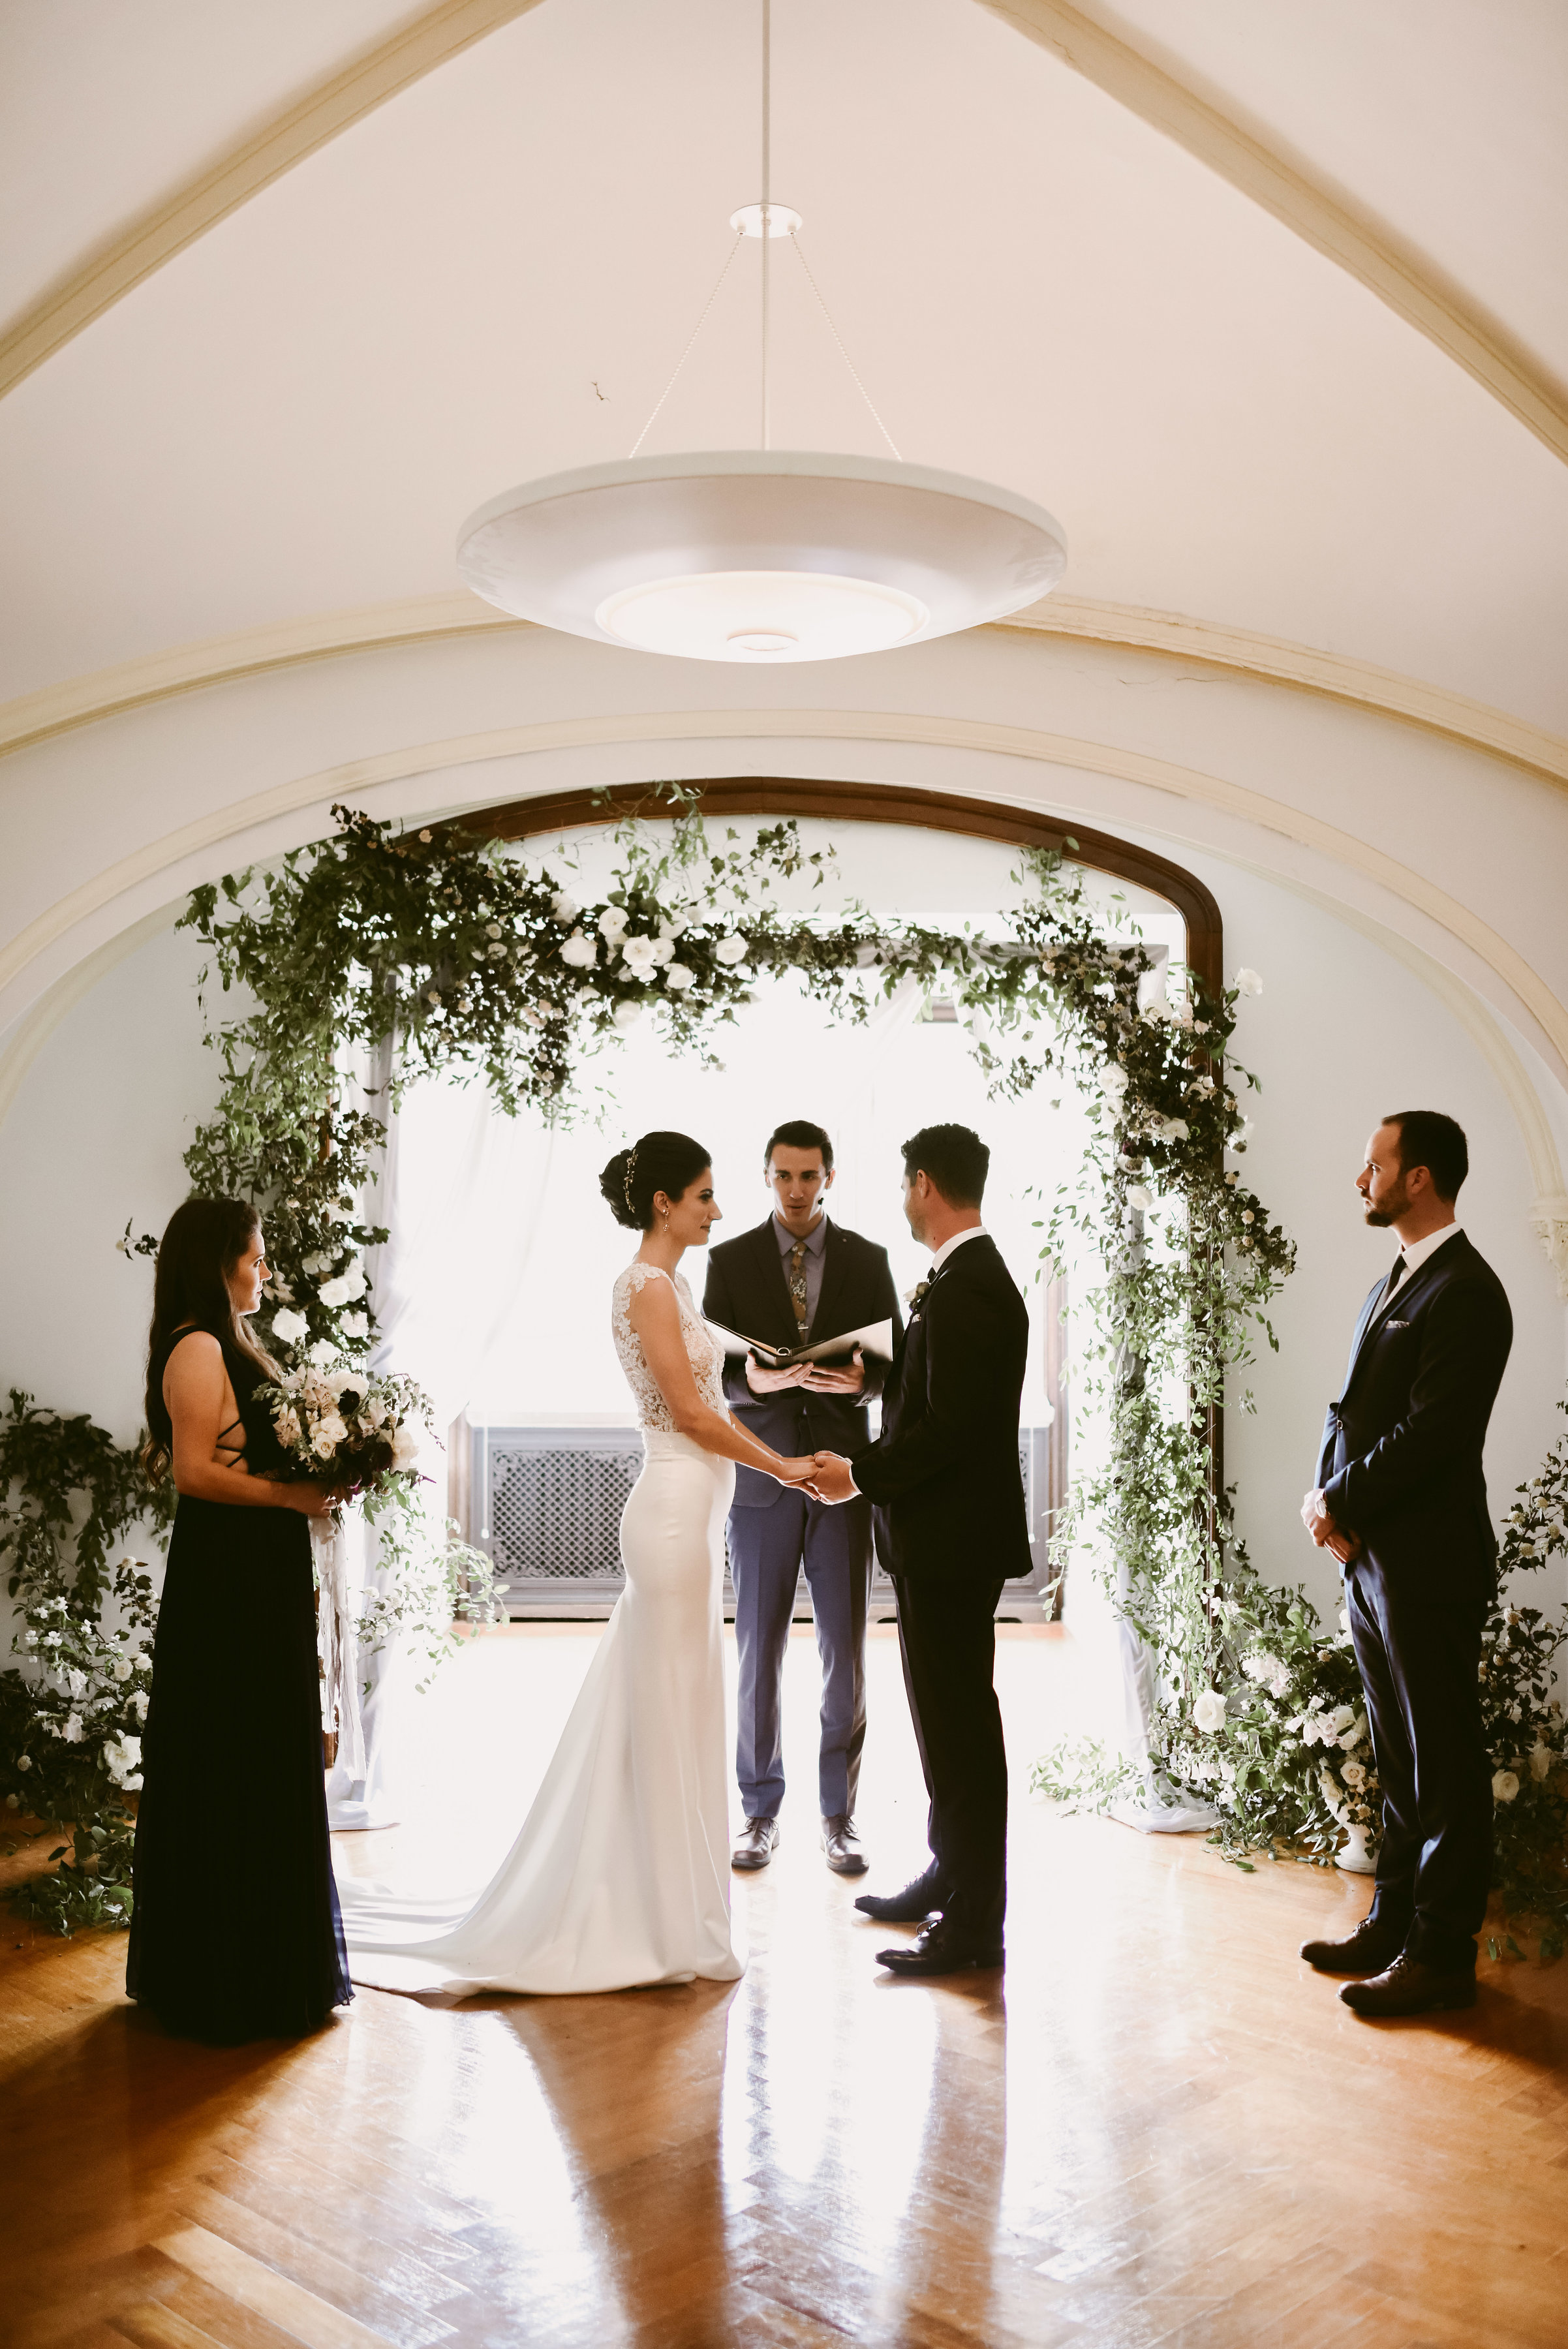 That ceremony space!!! That floral arch!!! So beautiful!